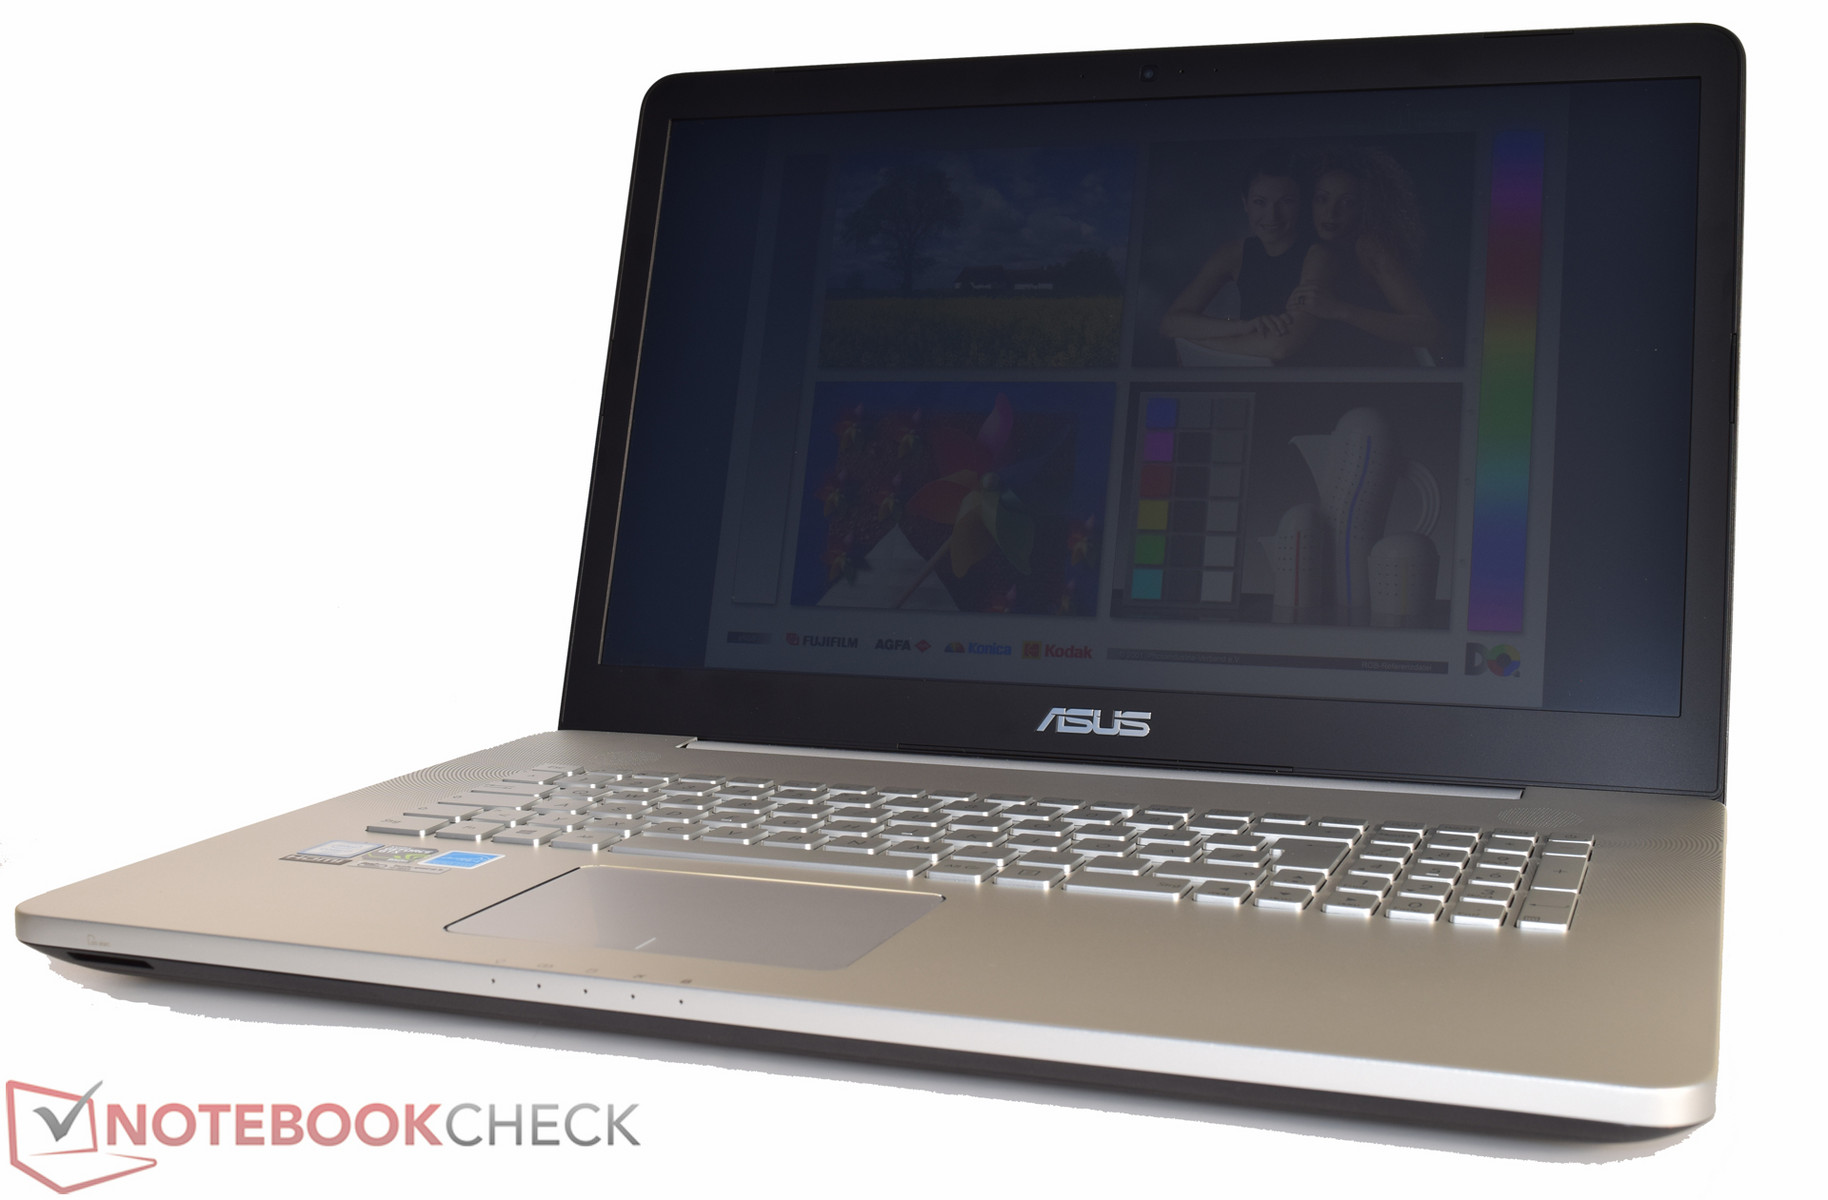 ASUS VivoBook Pro N552VX Realtek Card Reader Driver Windows XP